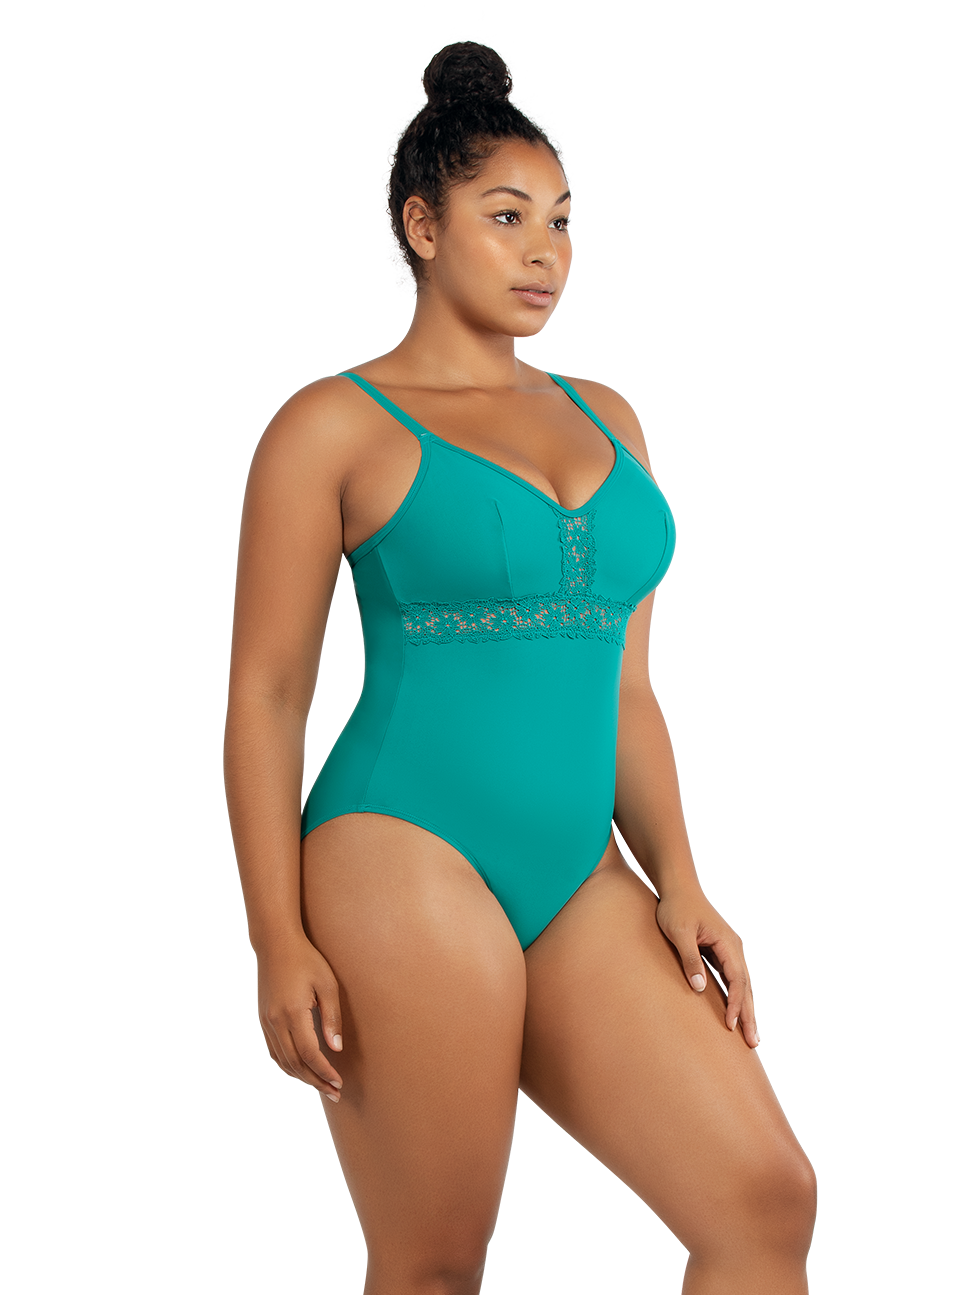 PARFAIT Brigitte OnePieceSwimsuitS8206 DarkMint Side - Brigitte One Piece Swimsuit Dark Mint S8206